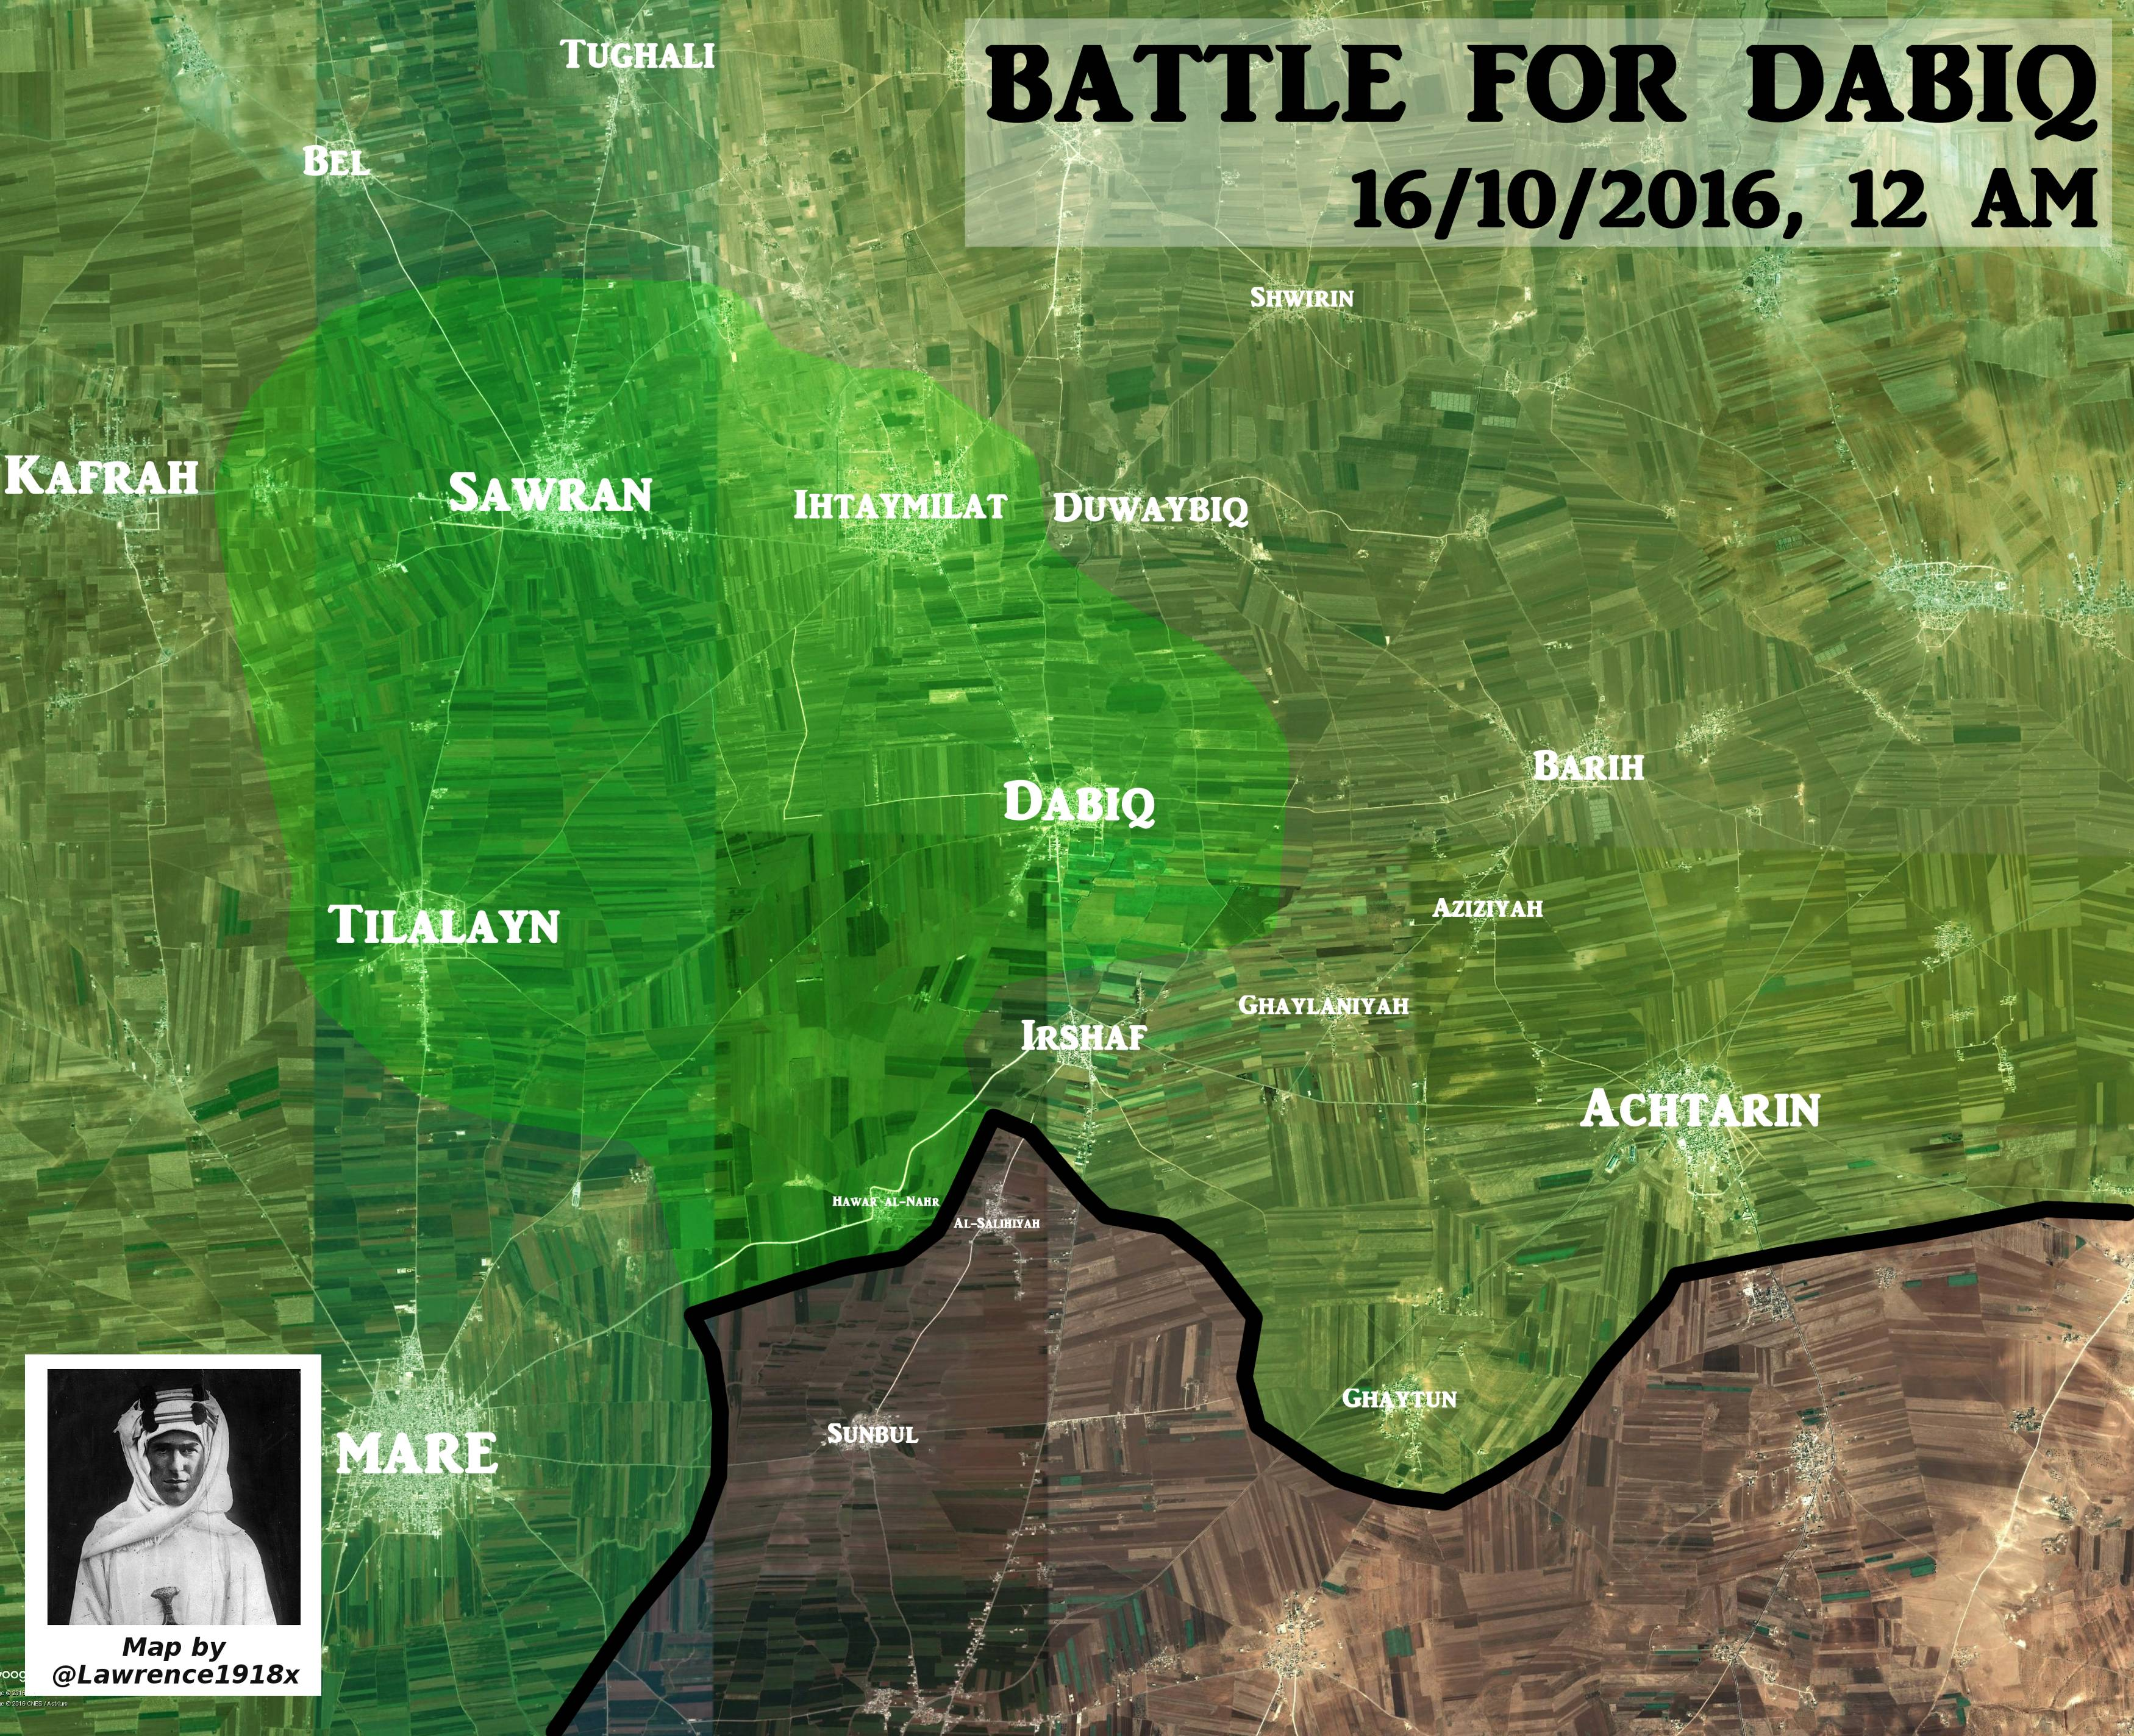 ISIS Withdraws from Area of Azaz in Northern Aleppo. Turkish-backed Militants Take Control of Dabiq and Sawran